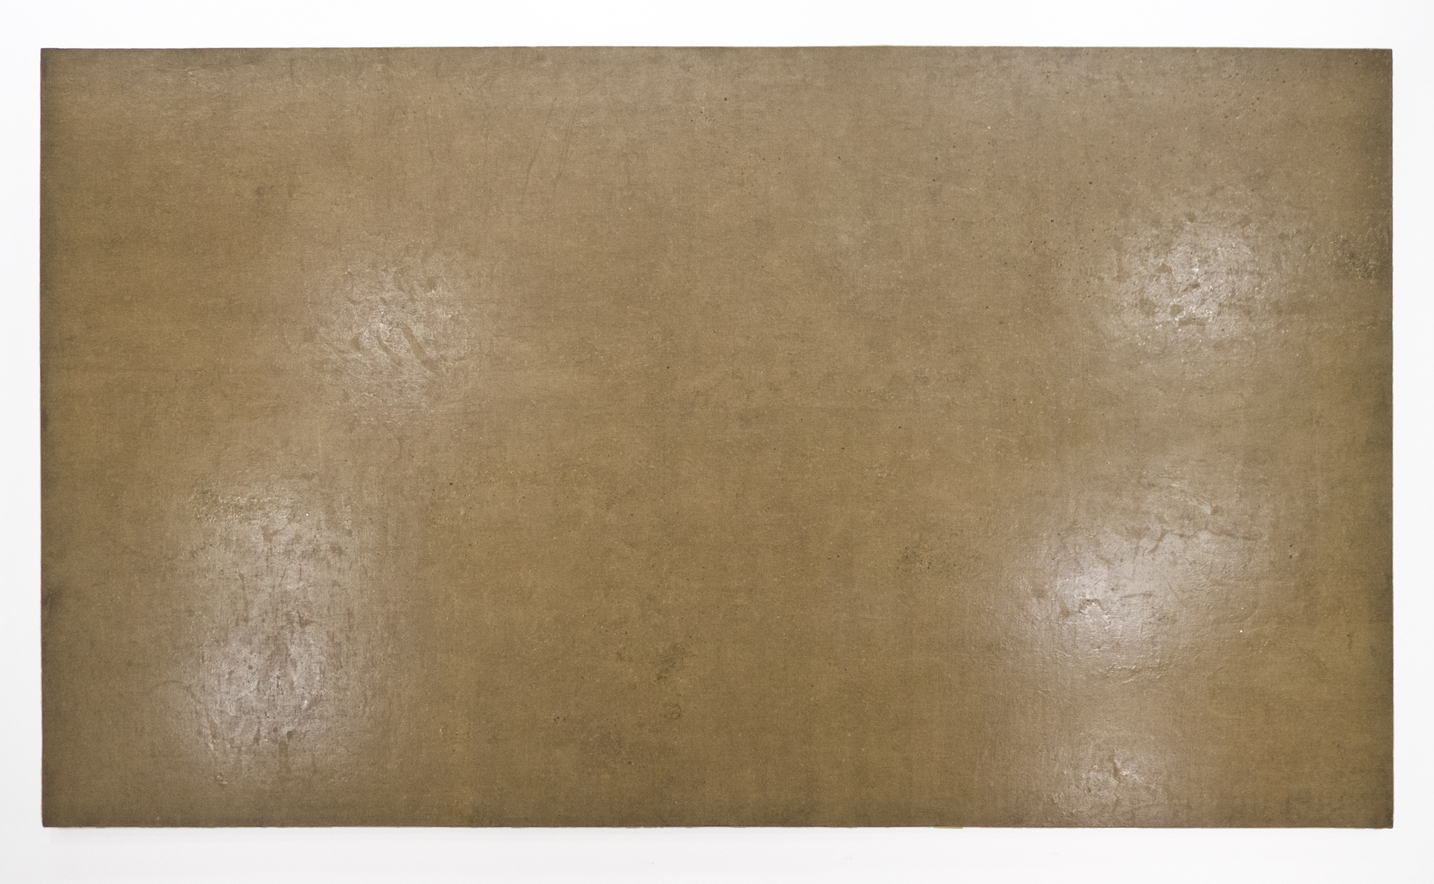 "Ters; 1971; Resin/emulsion on unpainted linen; 67 x 119""; Item #218"